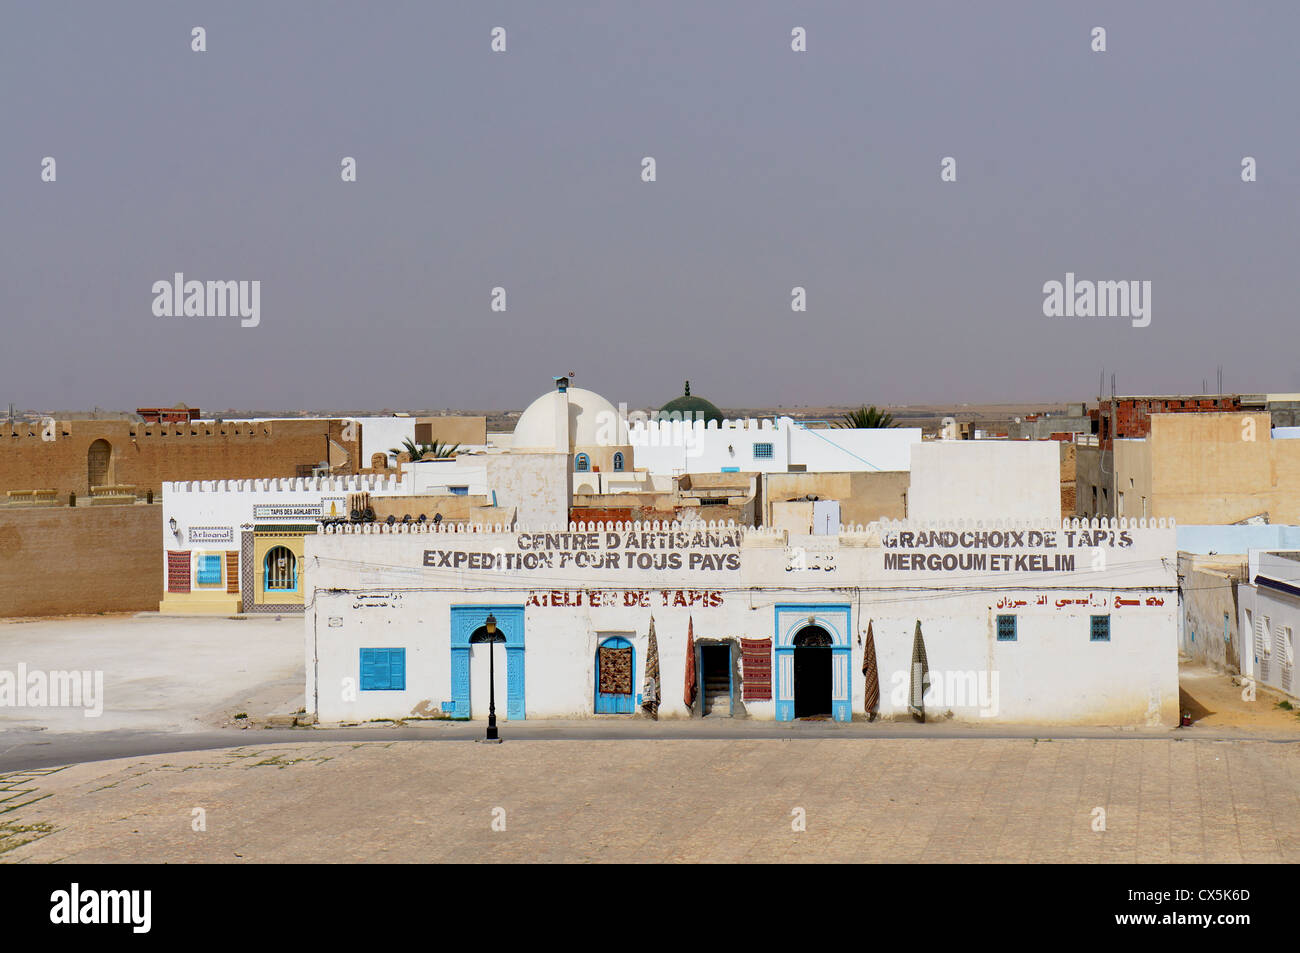 View of a carpets fatory in the tunisian city of Kairouan Stock Photo